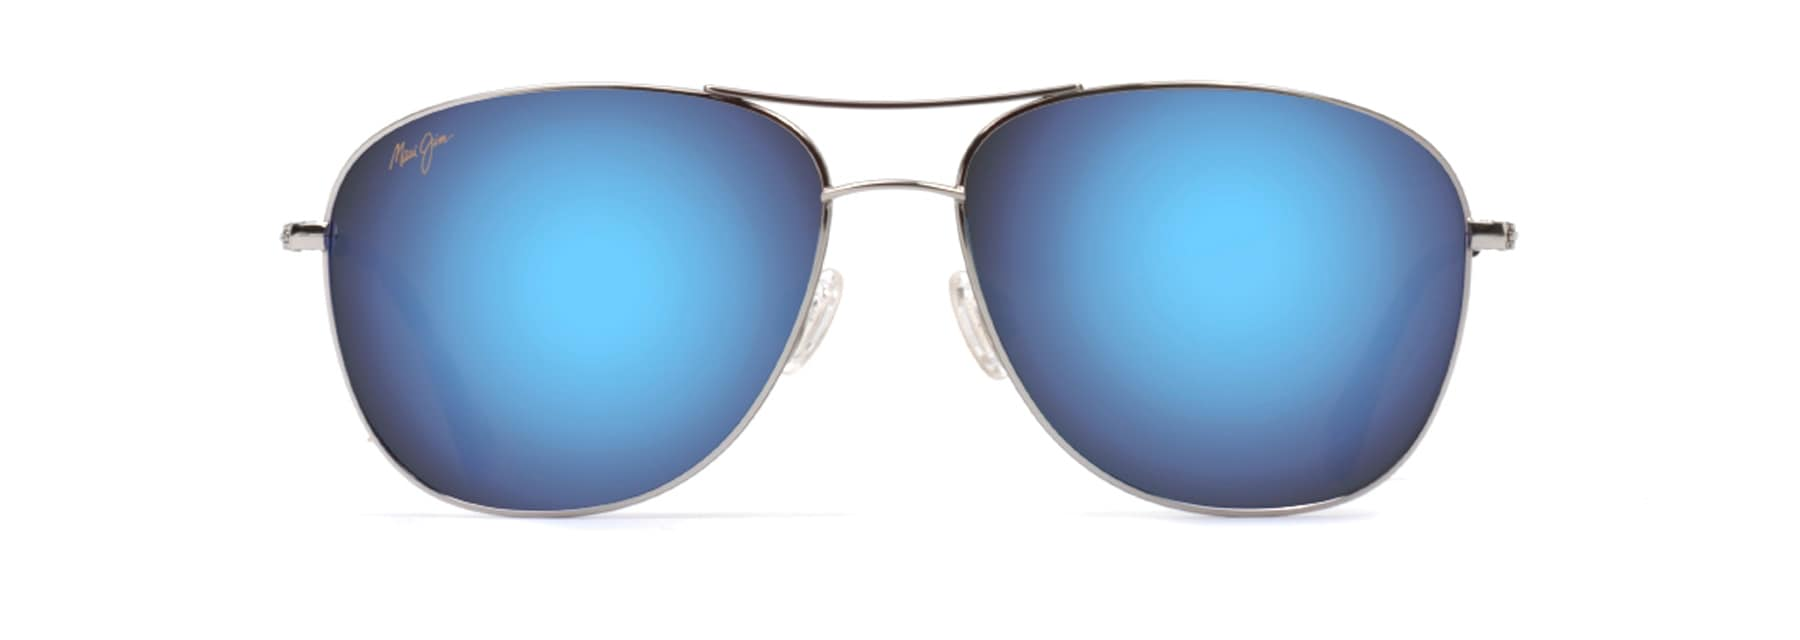 Cliff House Polarised Sunglasses   Maui Jim® 9def53663667